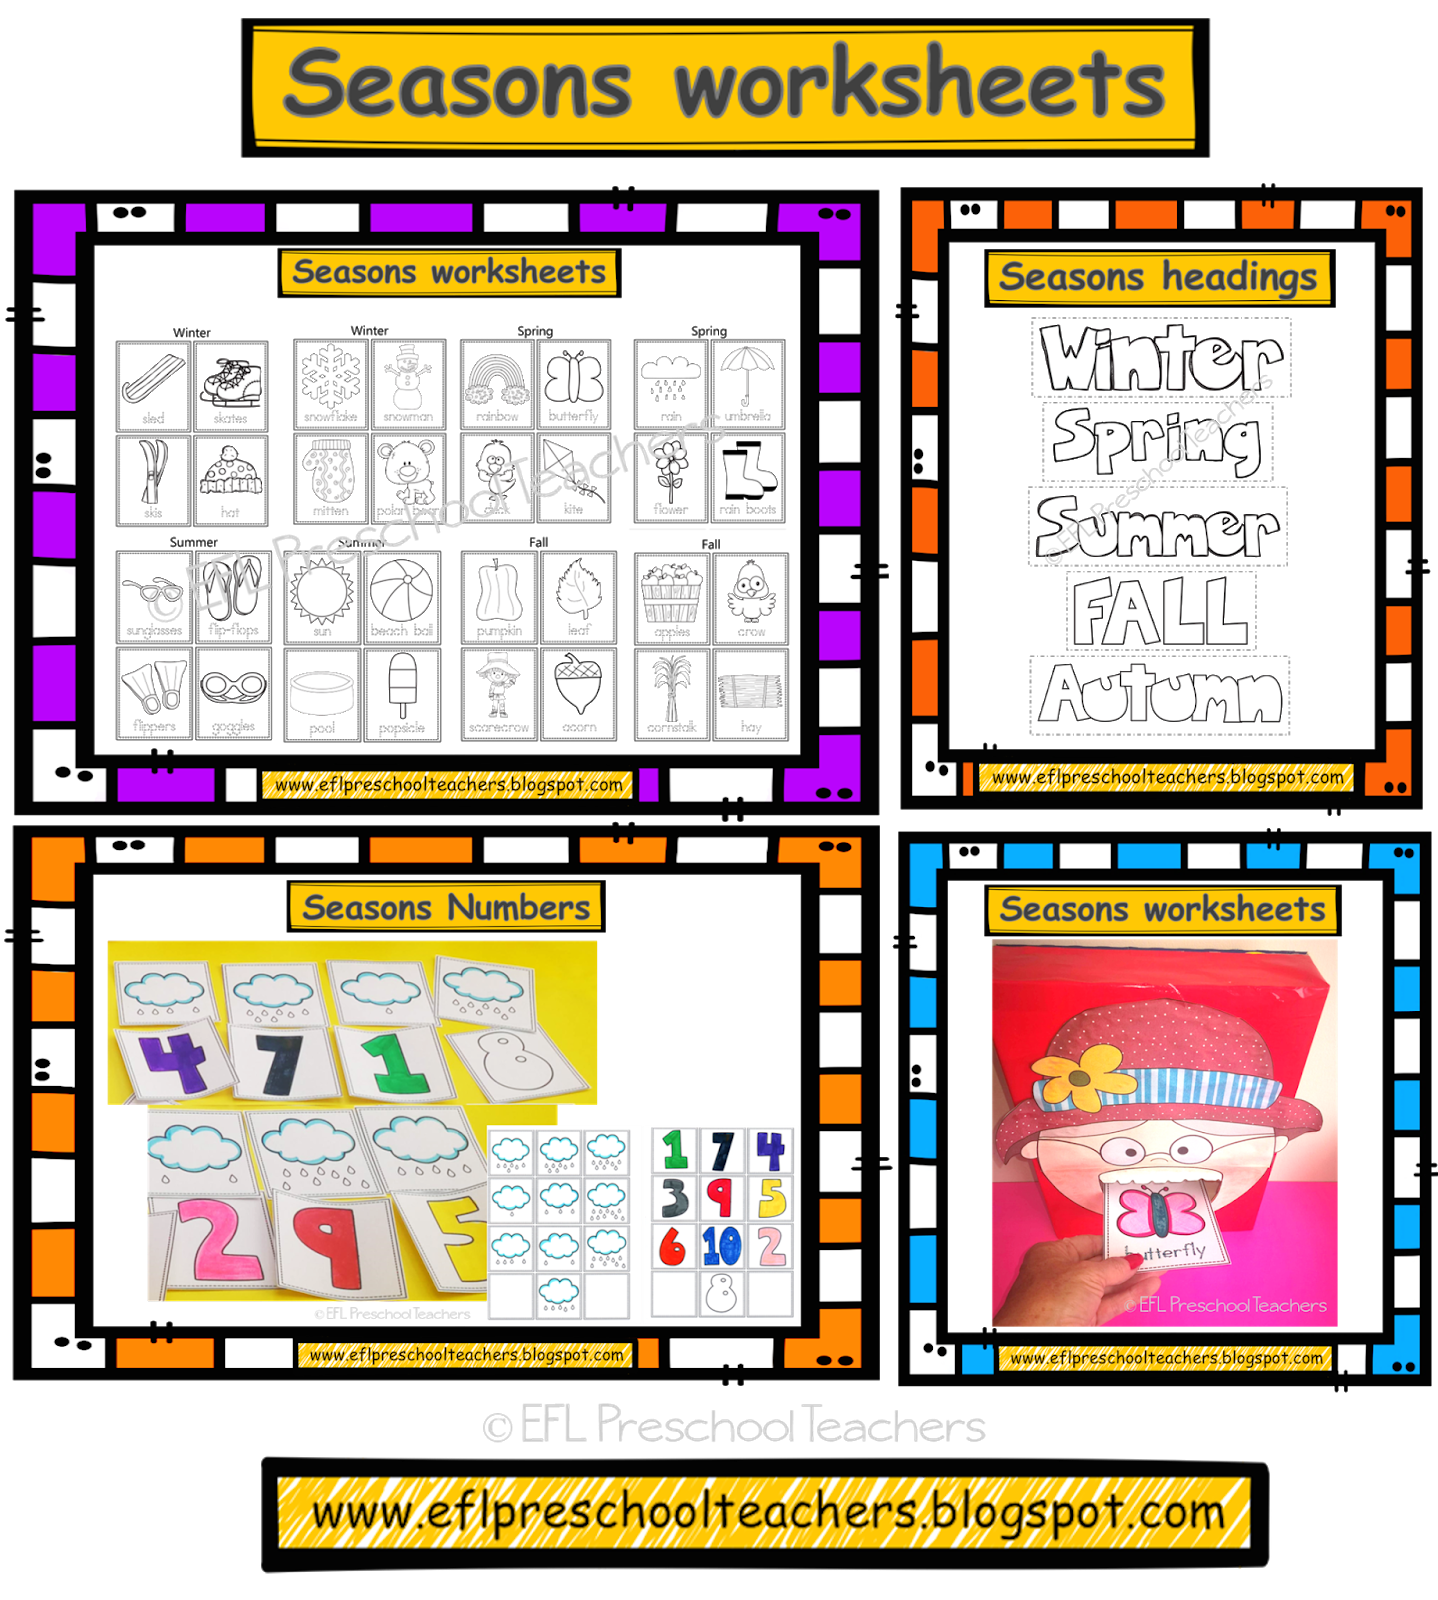 Esl Efl Preschool Teachers Seasons Unit Worksheets For